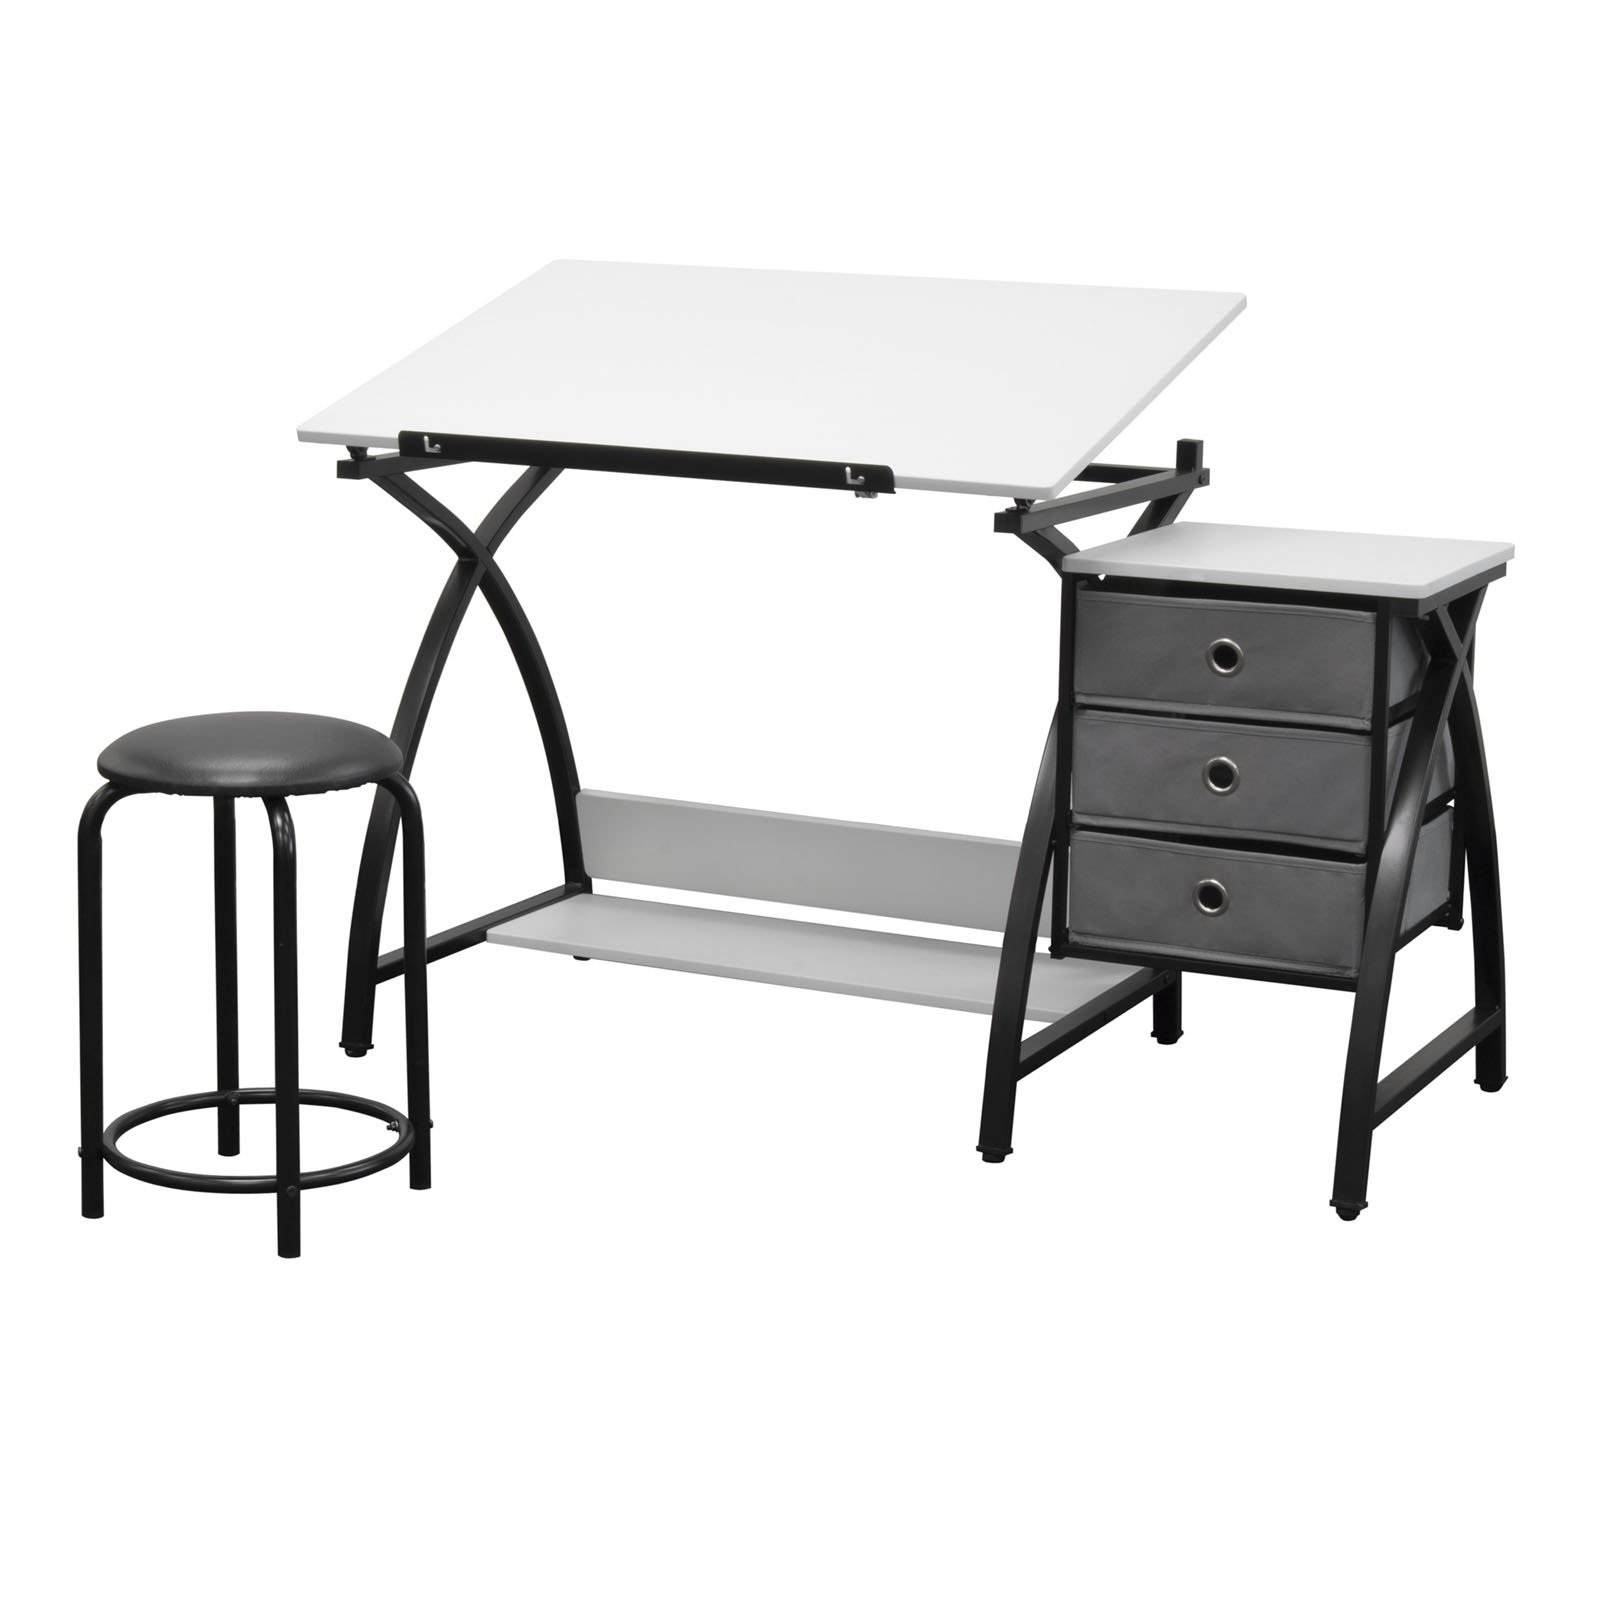 Studio Designs 13326 Comet Center with Stool, Black/White by SD STUDIO DESIGNS (Image #1)